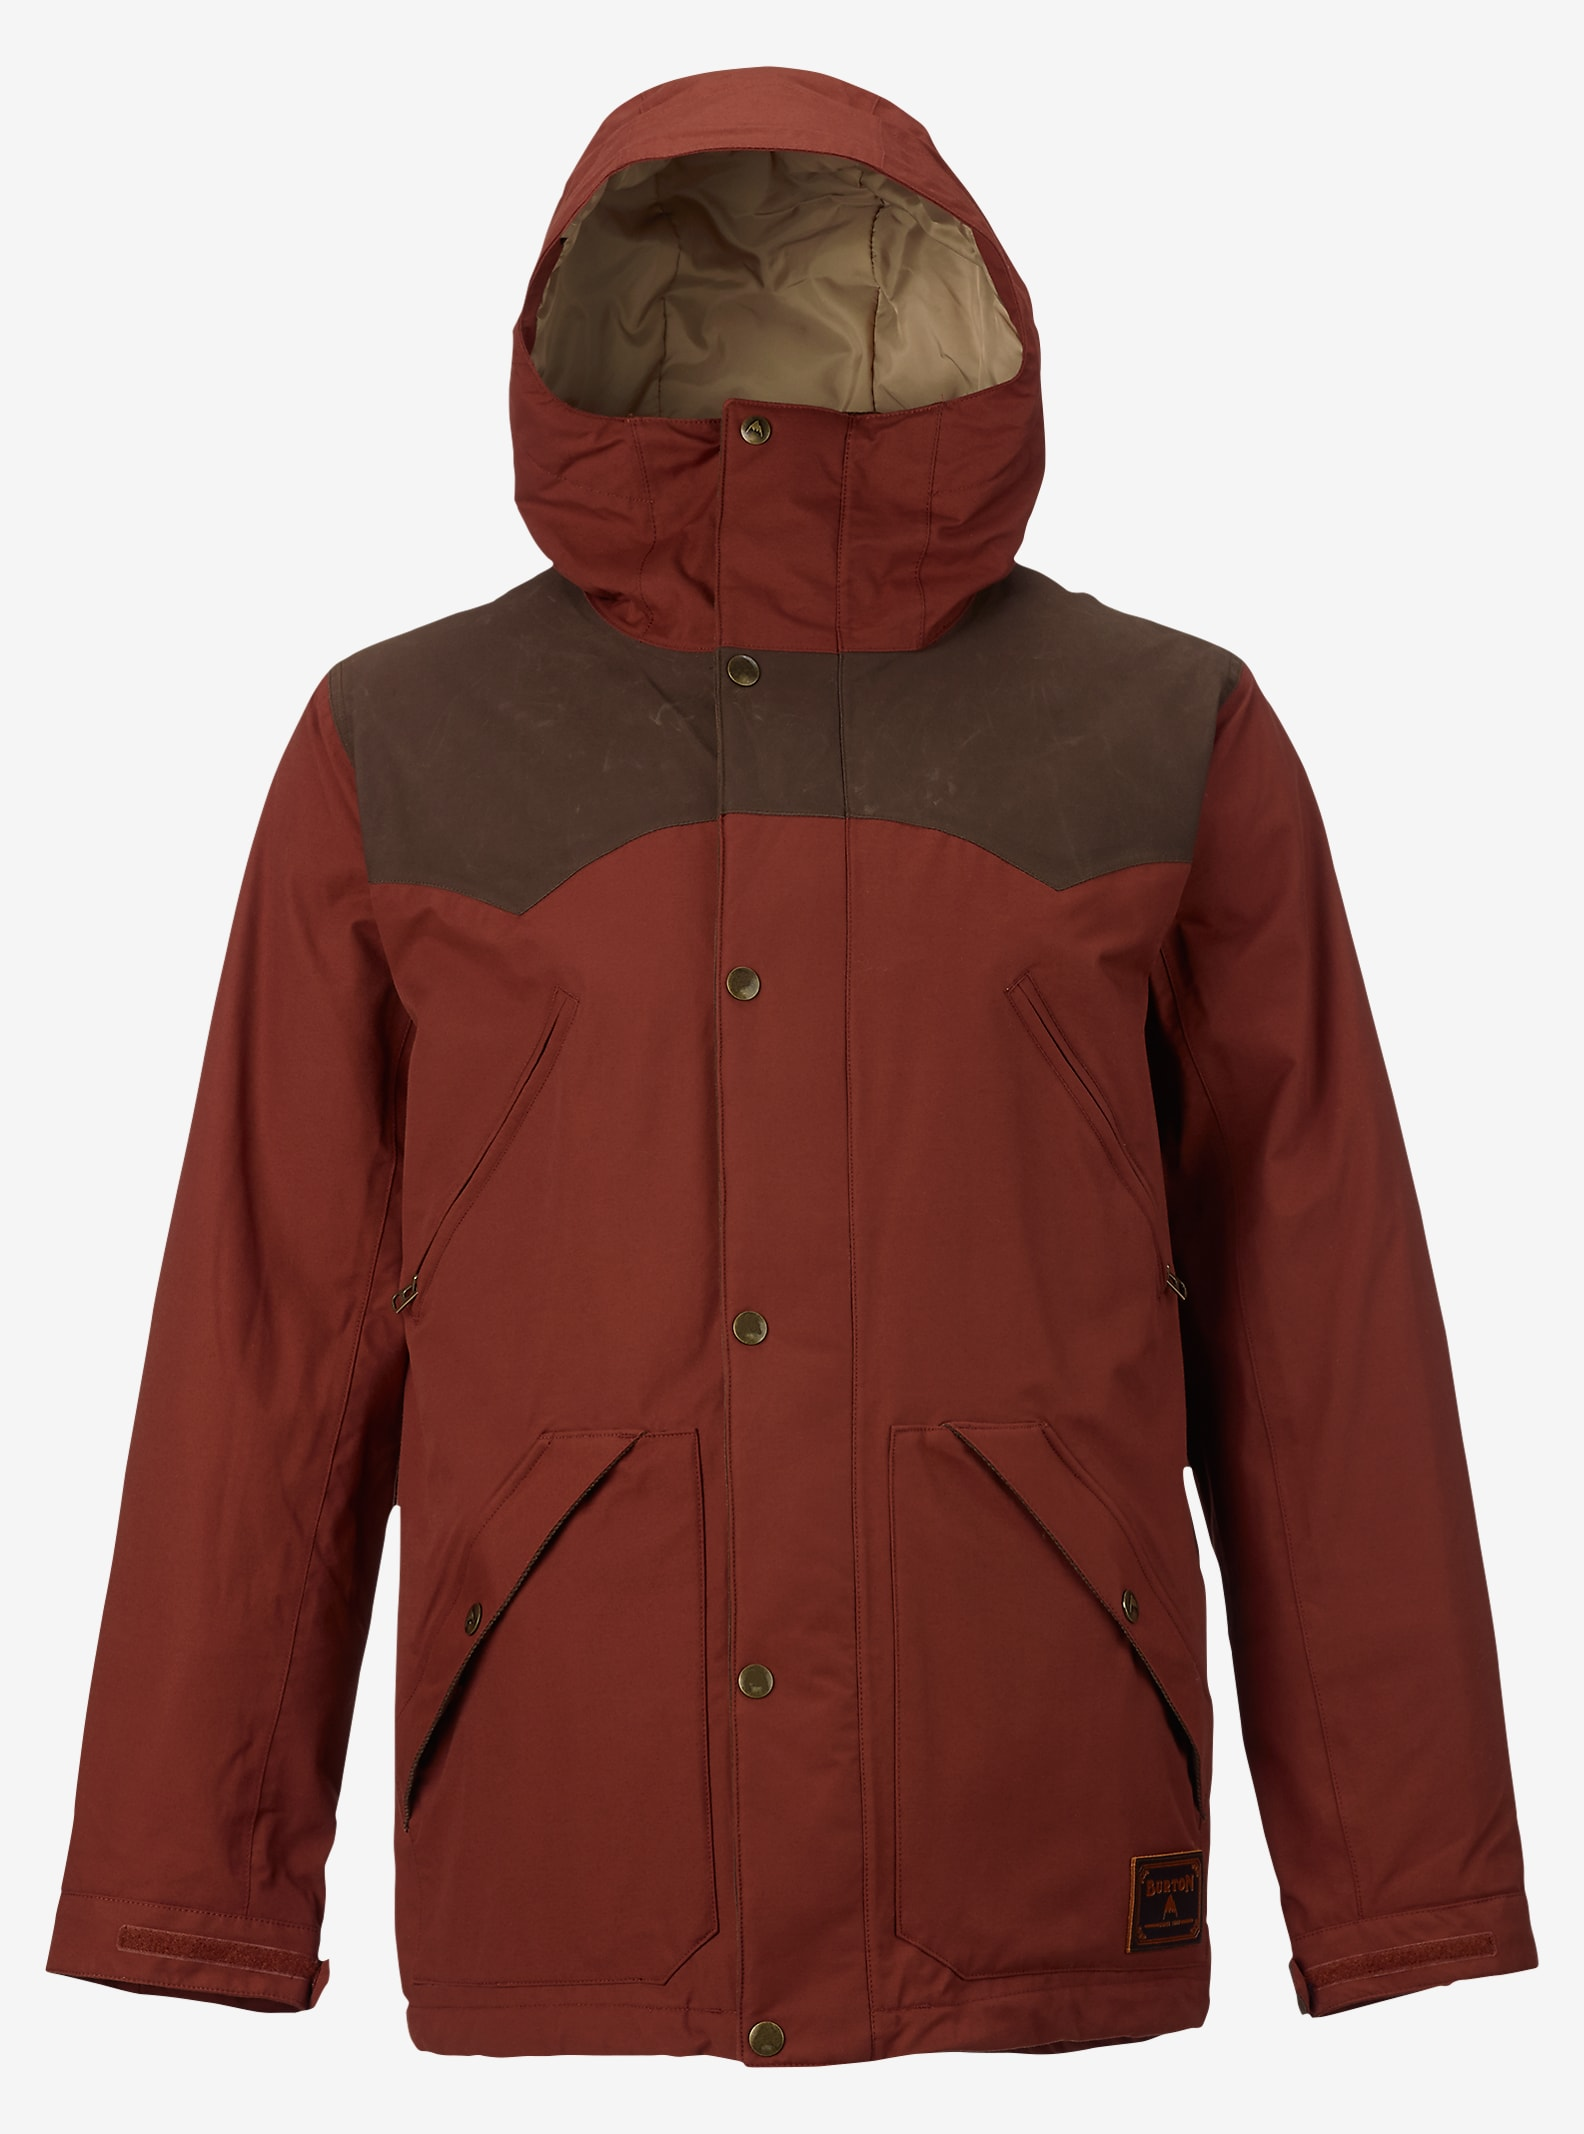 Burton Folsom Jacket shown in Matador / Mocha Wax